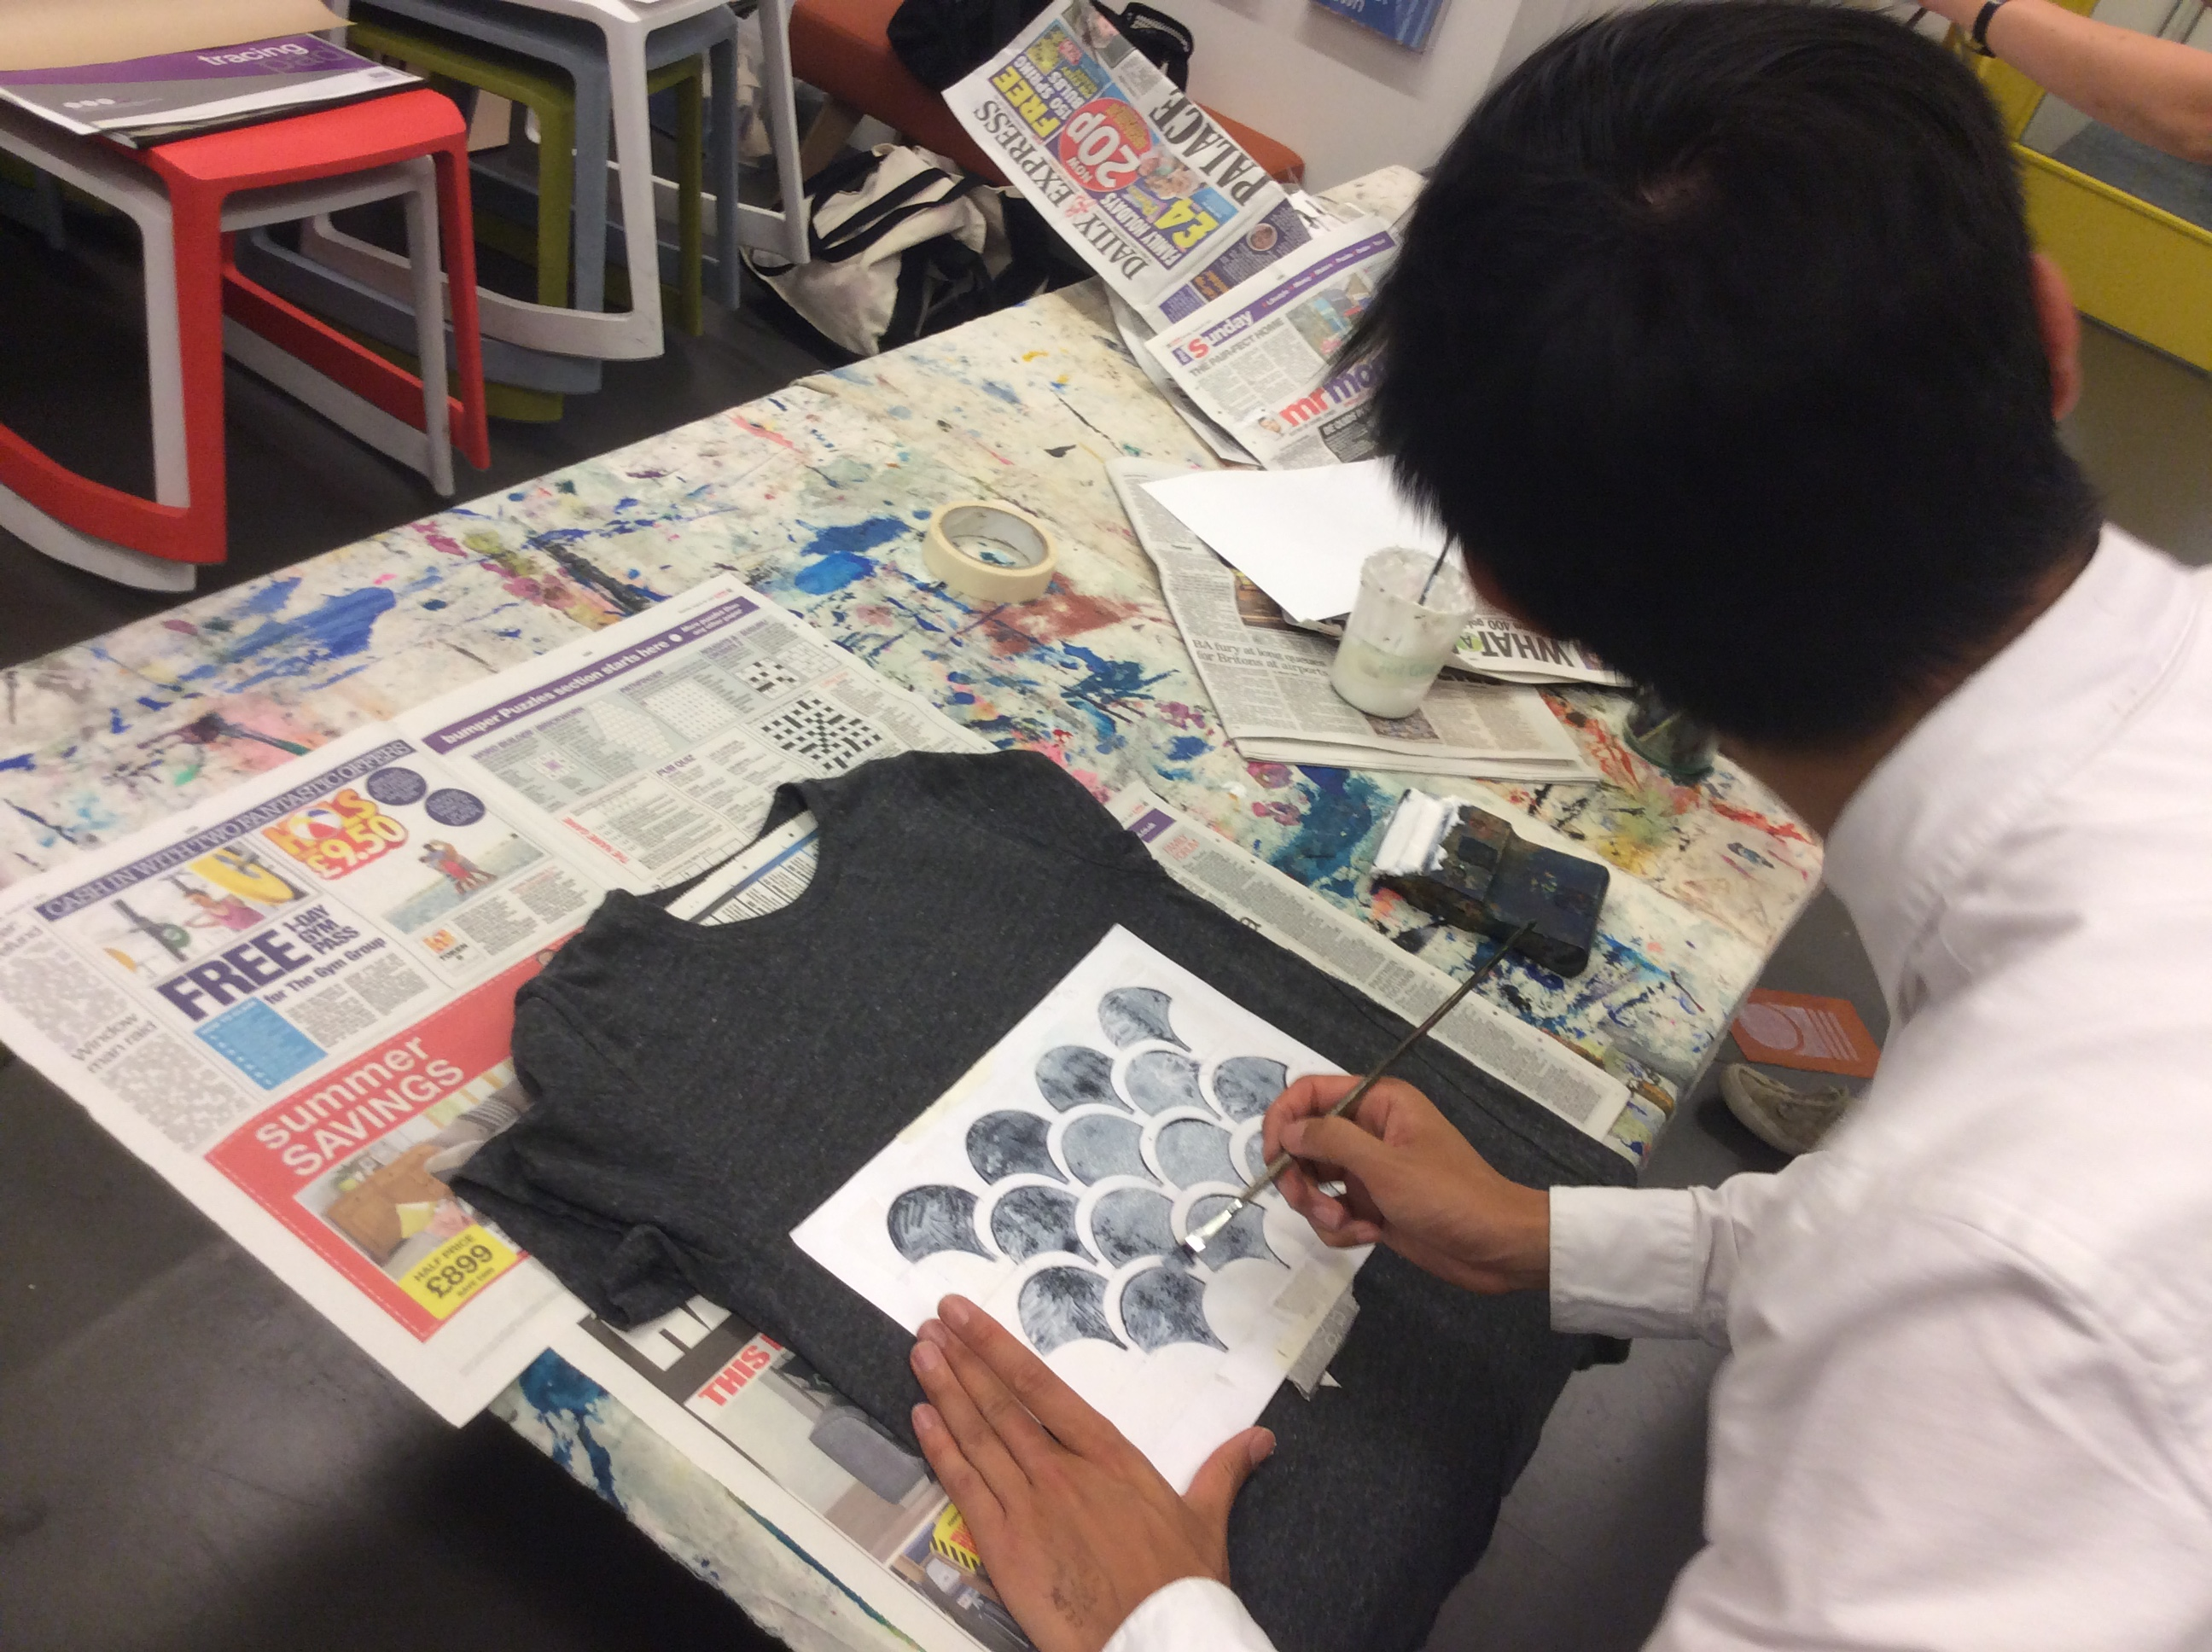 Metallic Printing Workshop at The Doodle Bar